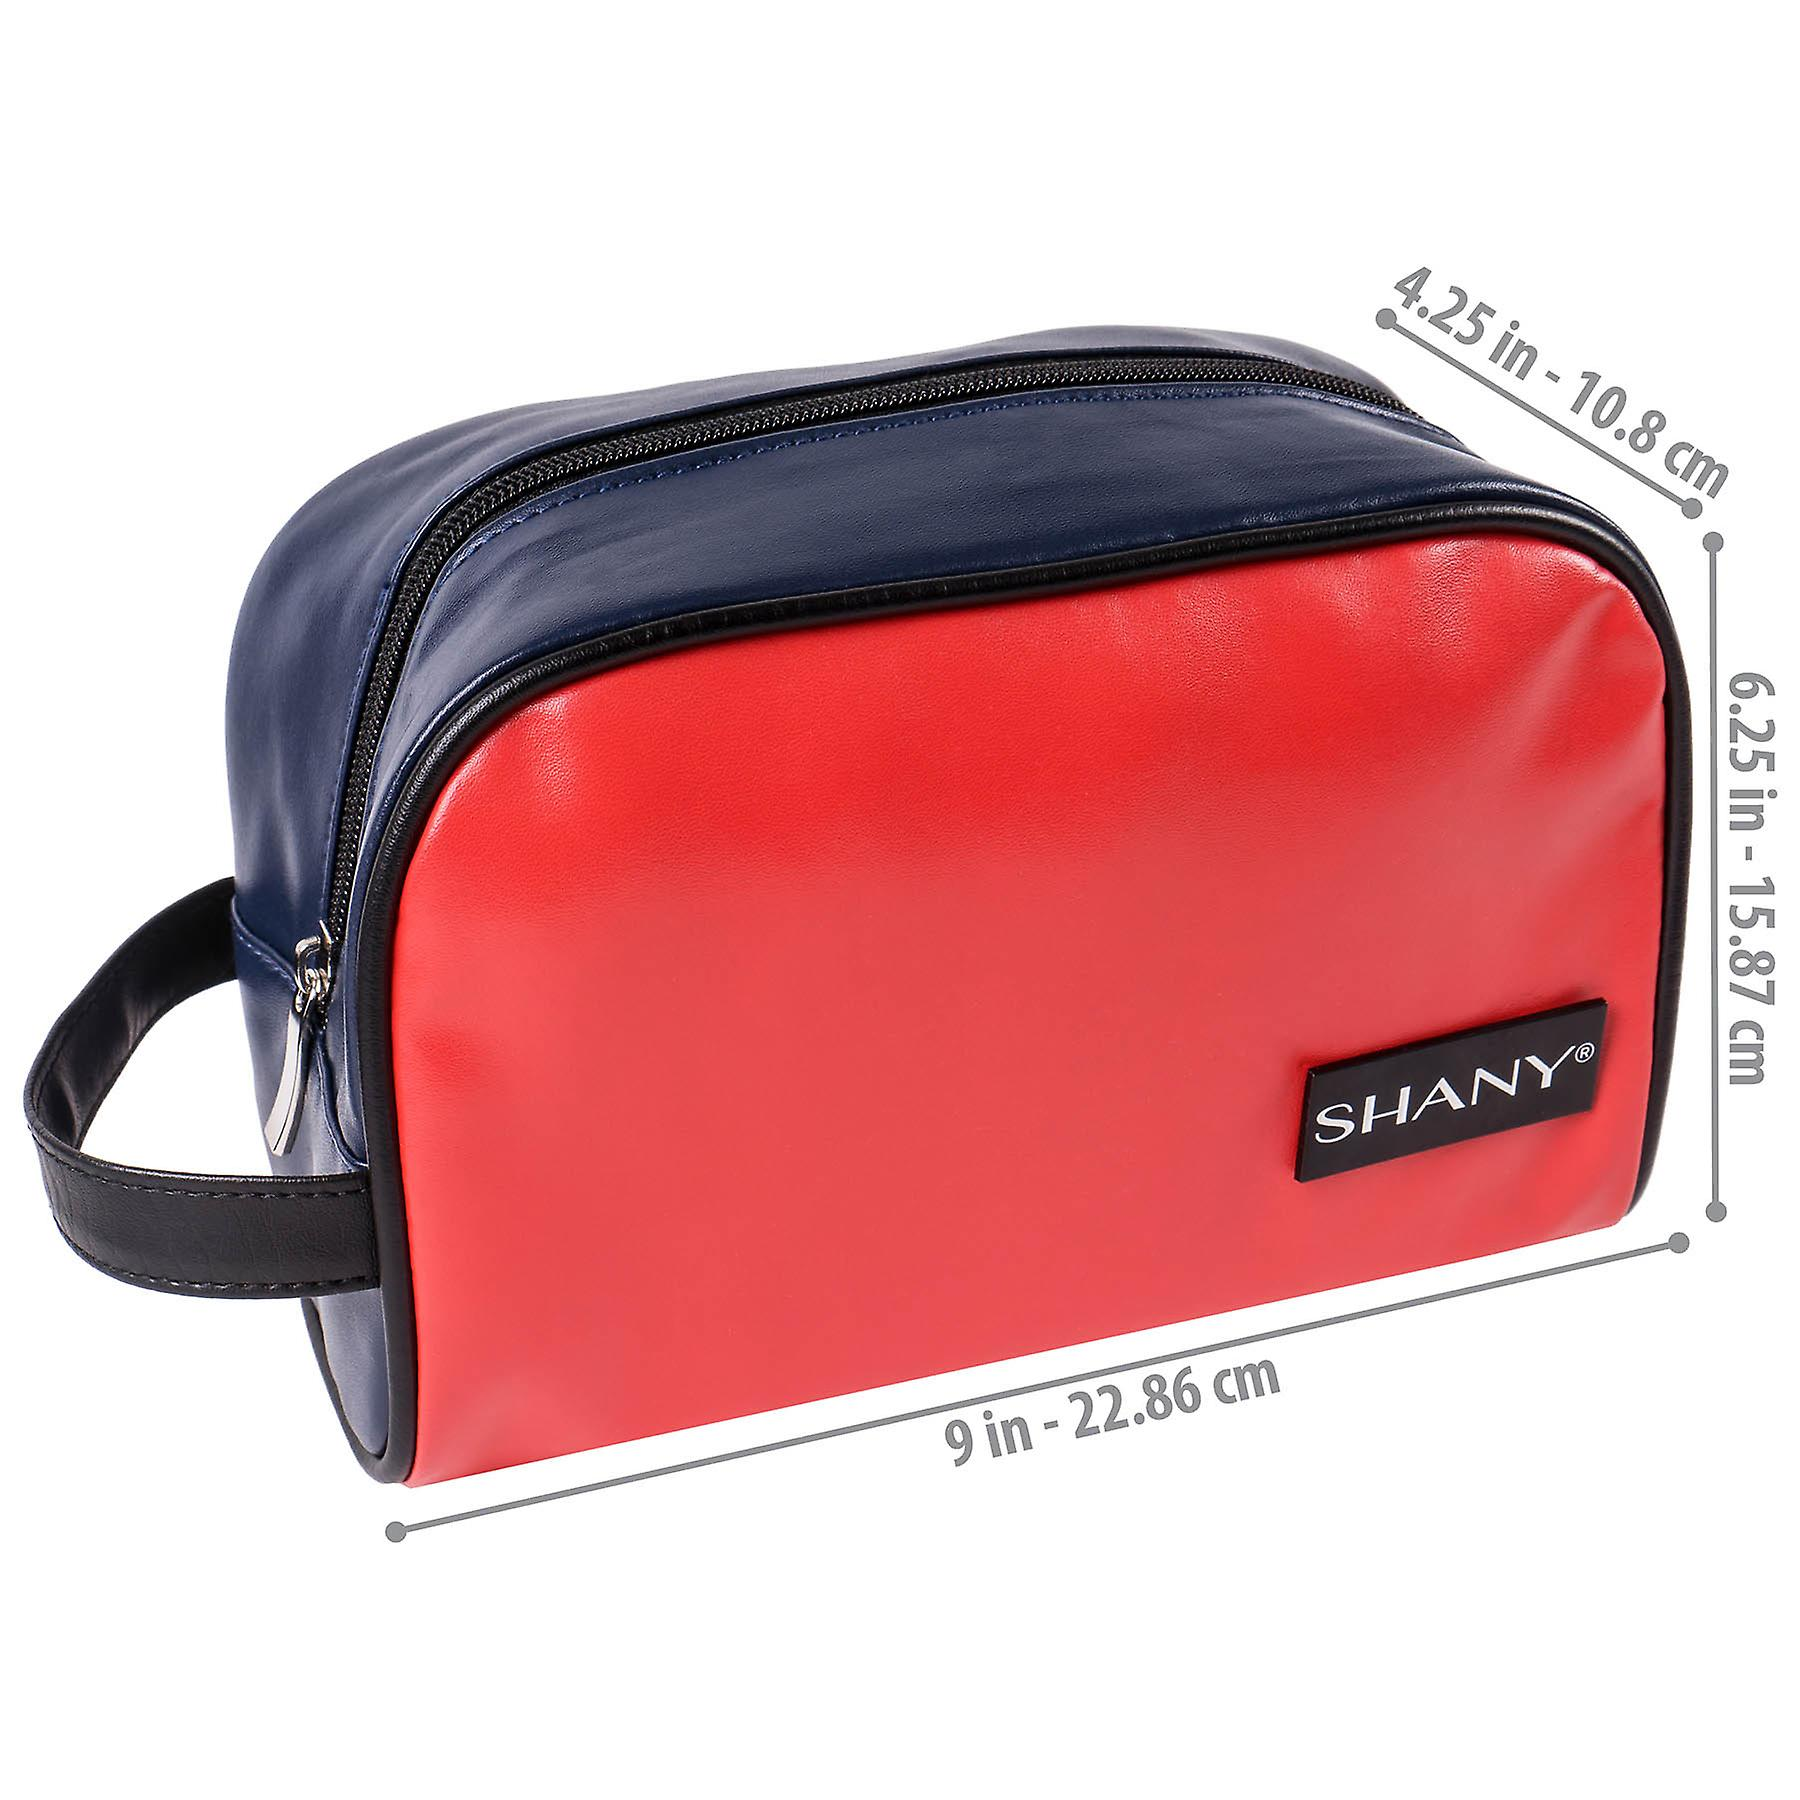 SHANY Grooming Bag and Travel Toiletry Tote – Zippered Faux Leather Organizer with Three Pockets – NAVY/RED